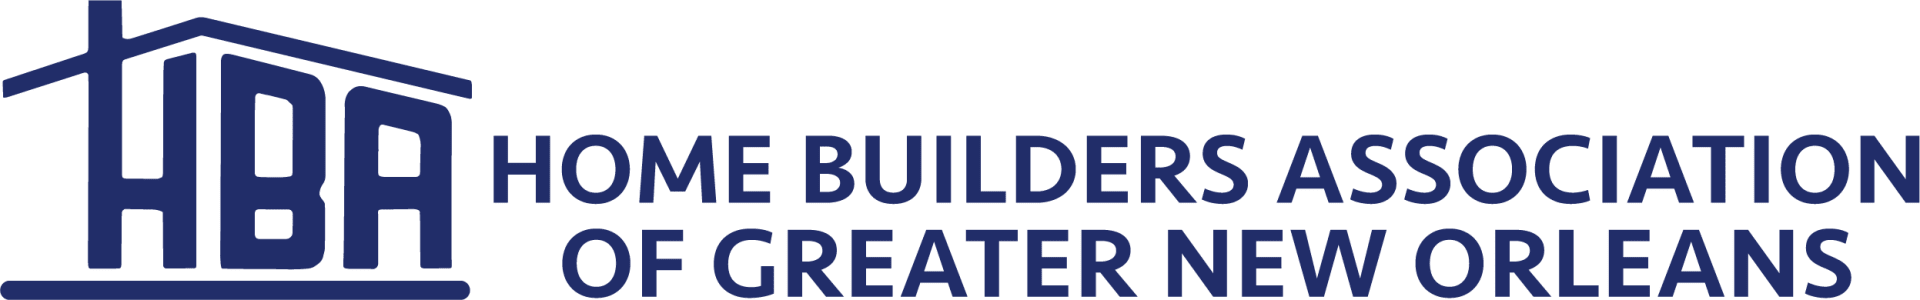 Home Builders Association of Greater New Orleans